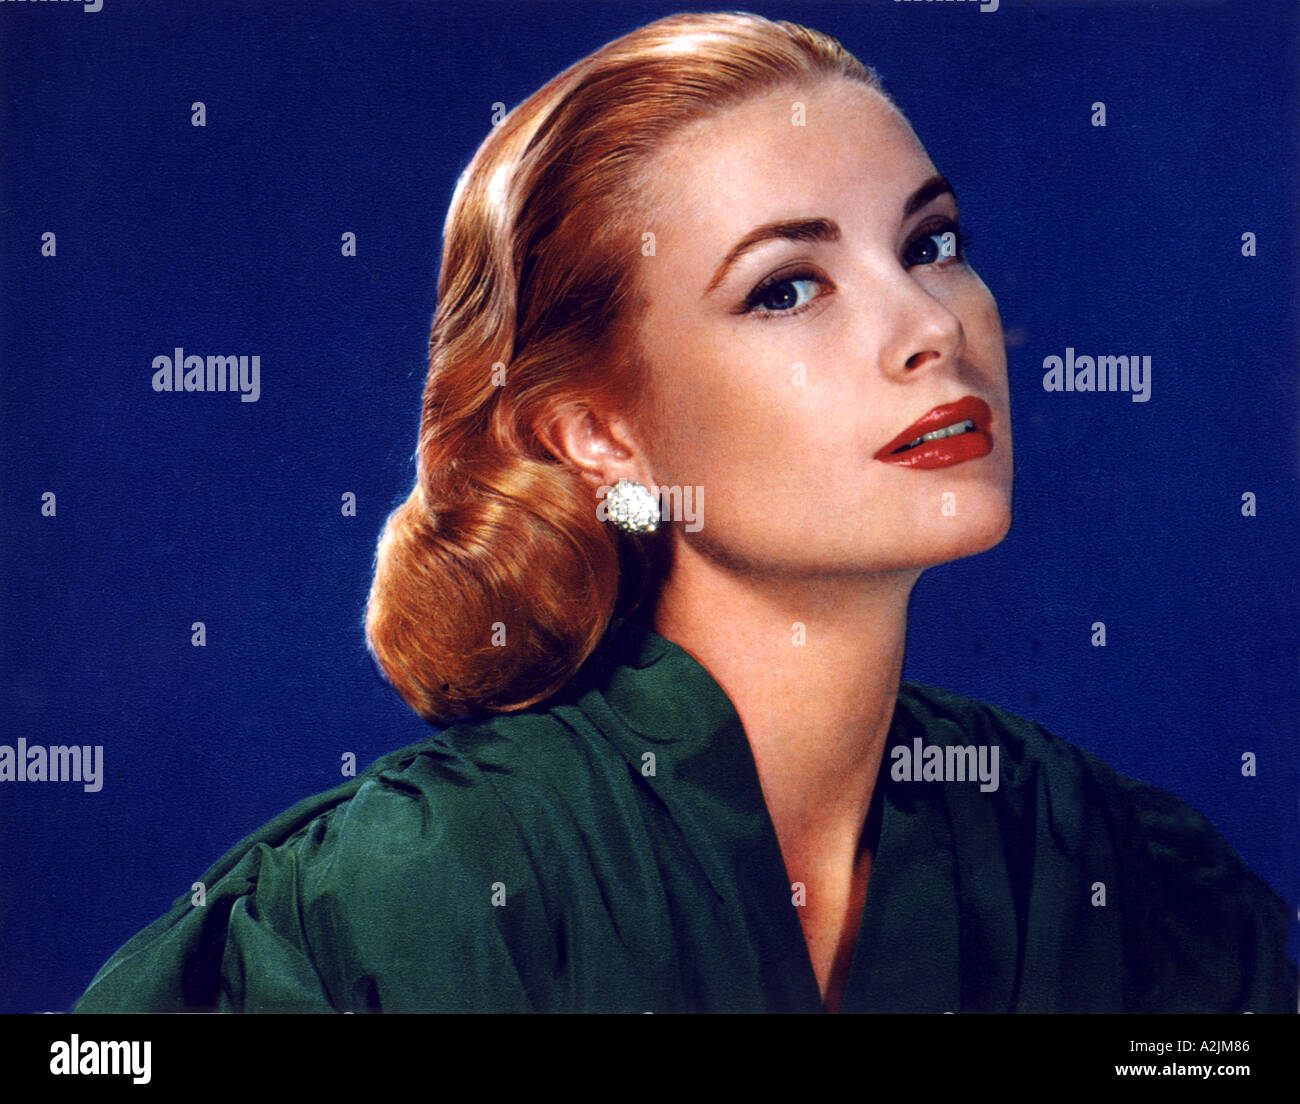 GRACE KELLY 1928 82 American film actress who married Prince Ranier of Monaco - Stock Image